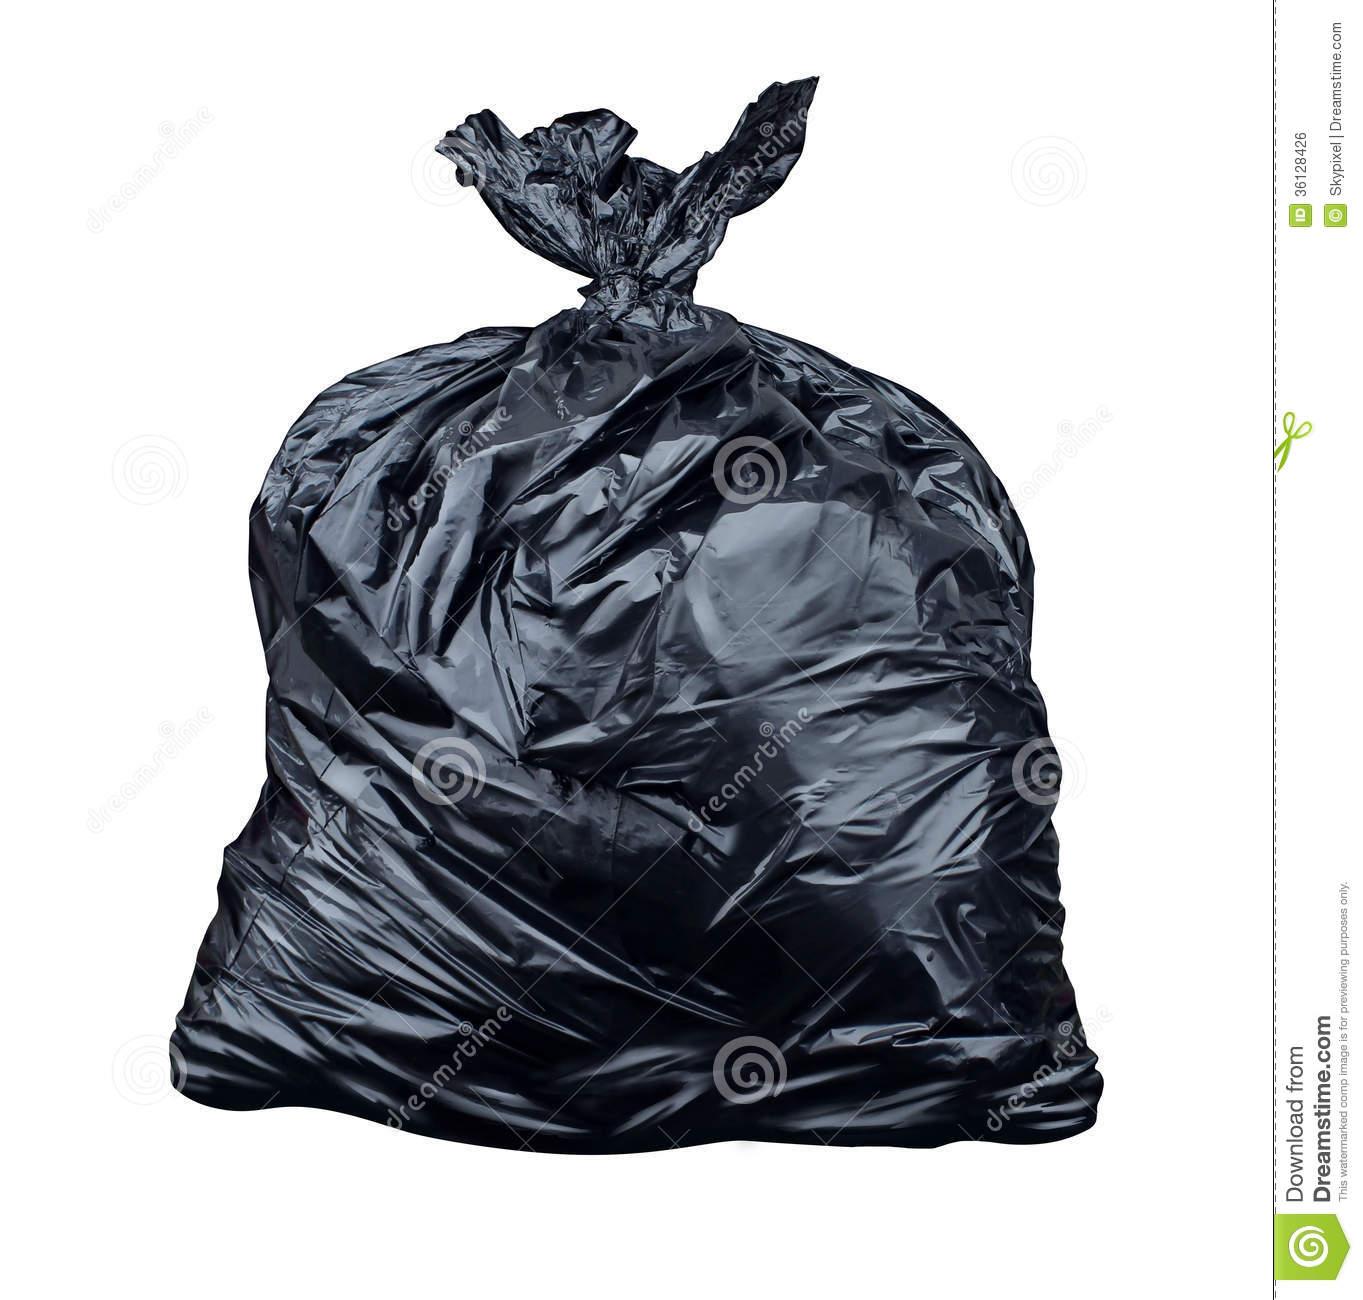 Garbage Bag Isolated On A White Background As A Symbol Of Waste